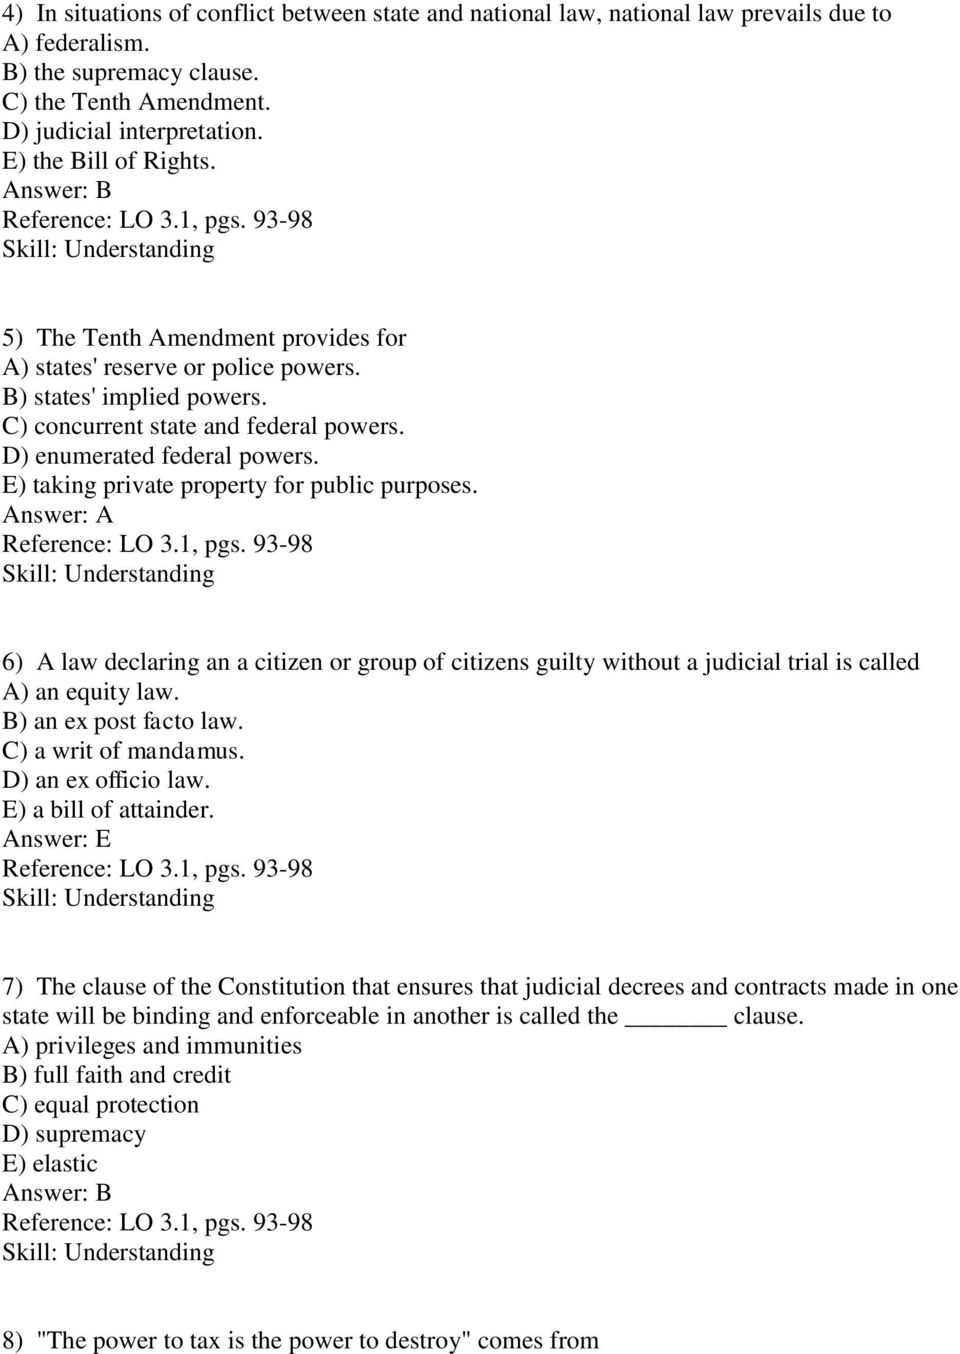 worksheet Fiscal Federalism Worksheet collection of chapter 3 federalism worksheet answers adriaticatoursrl reading comprehension quiz multiple choice